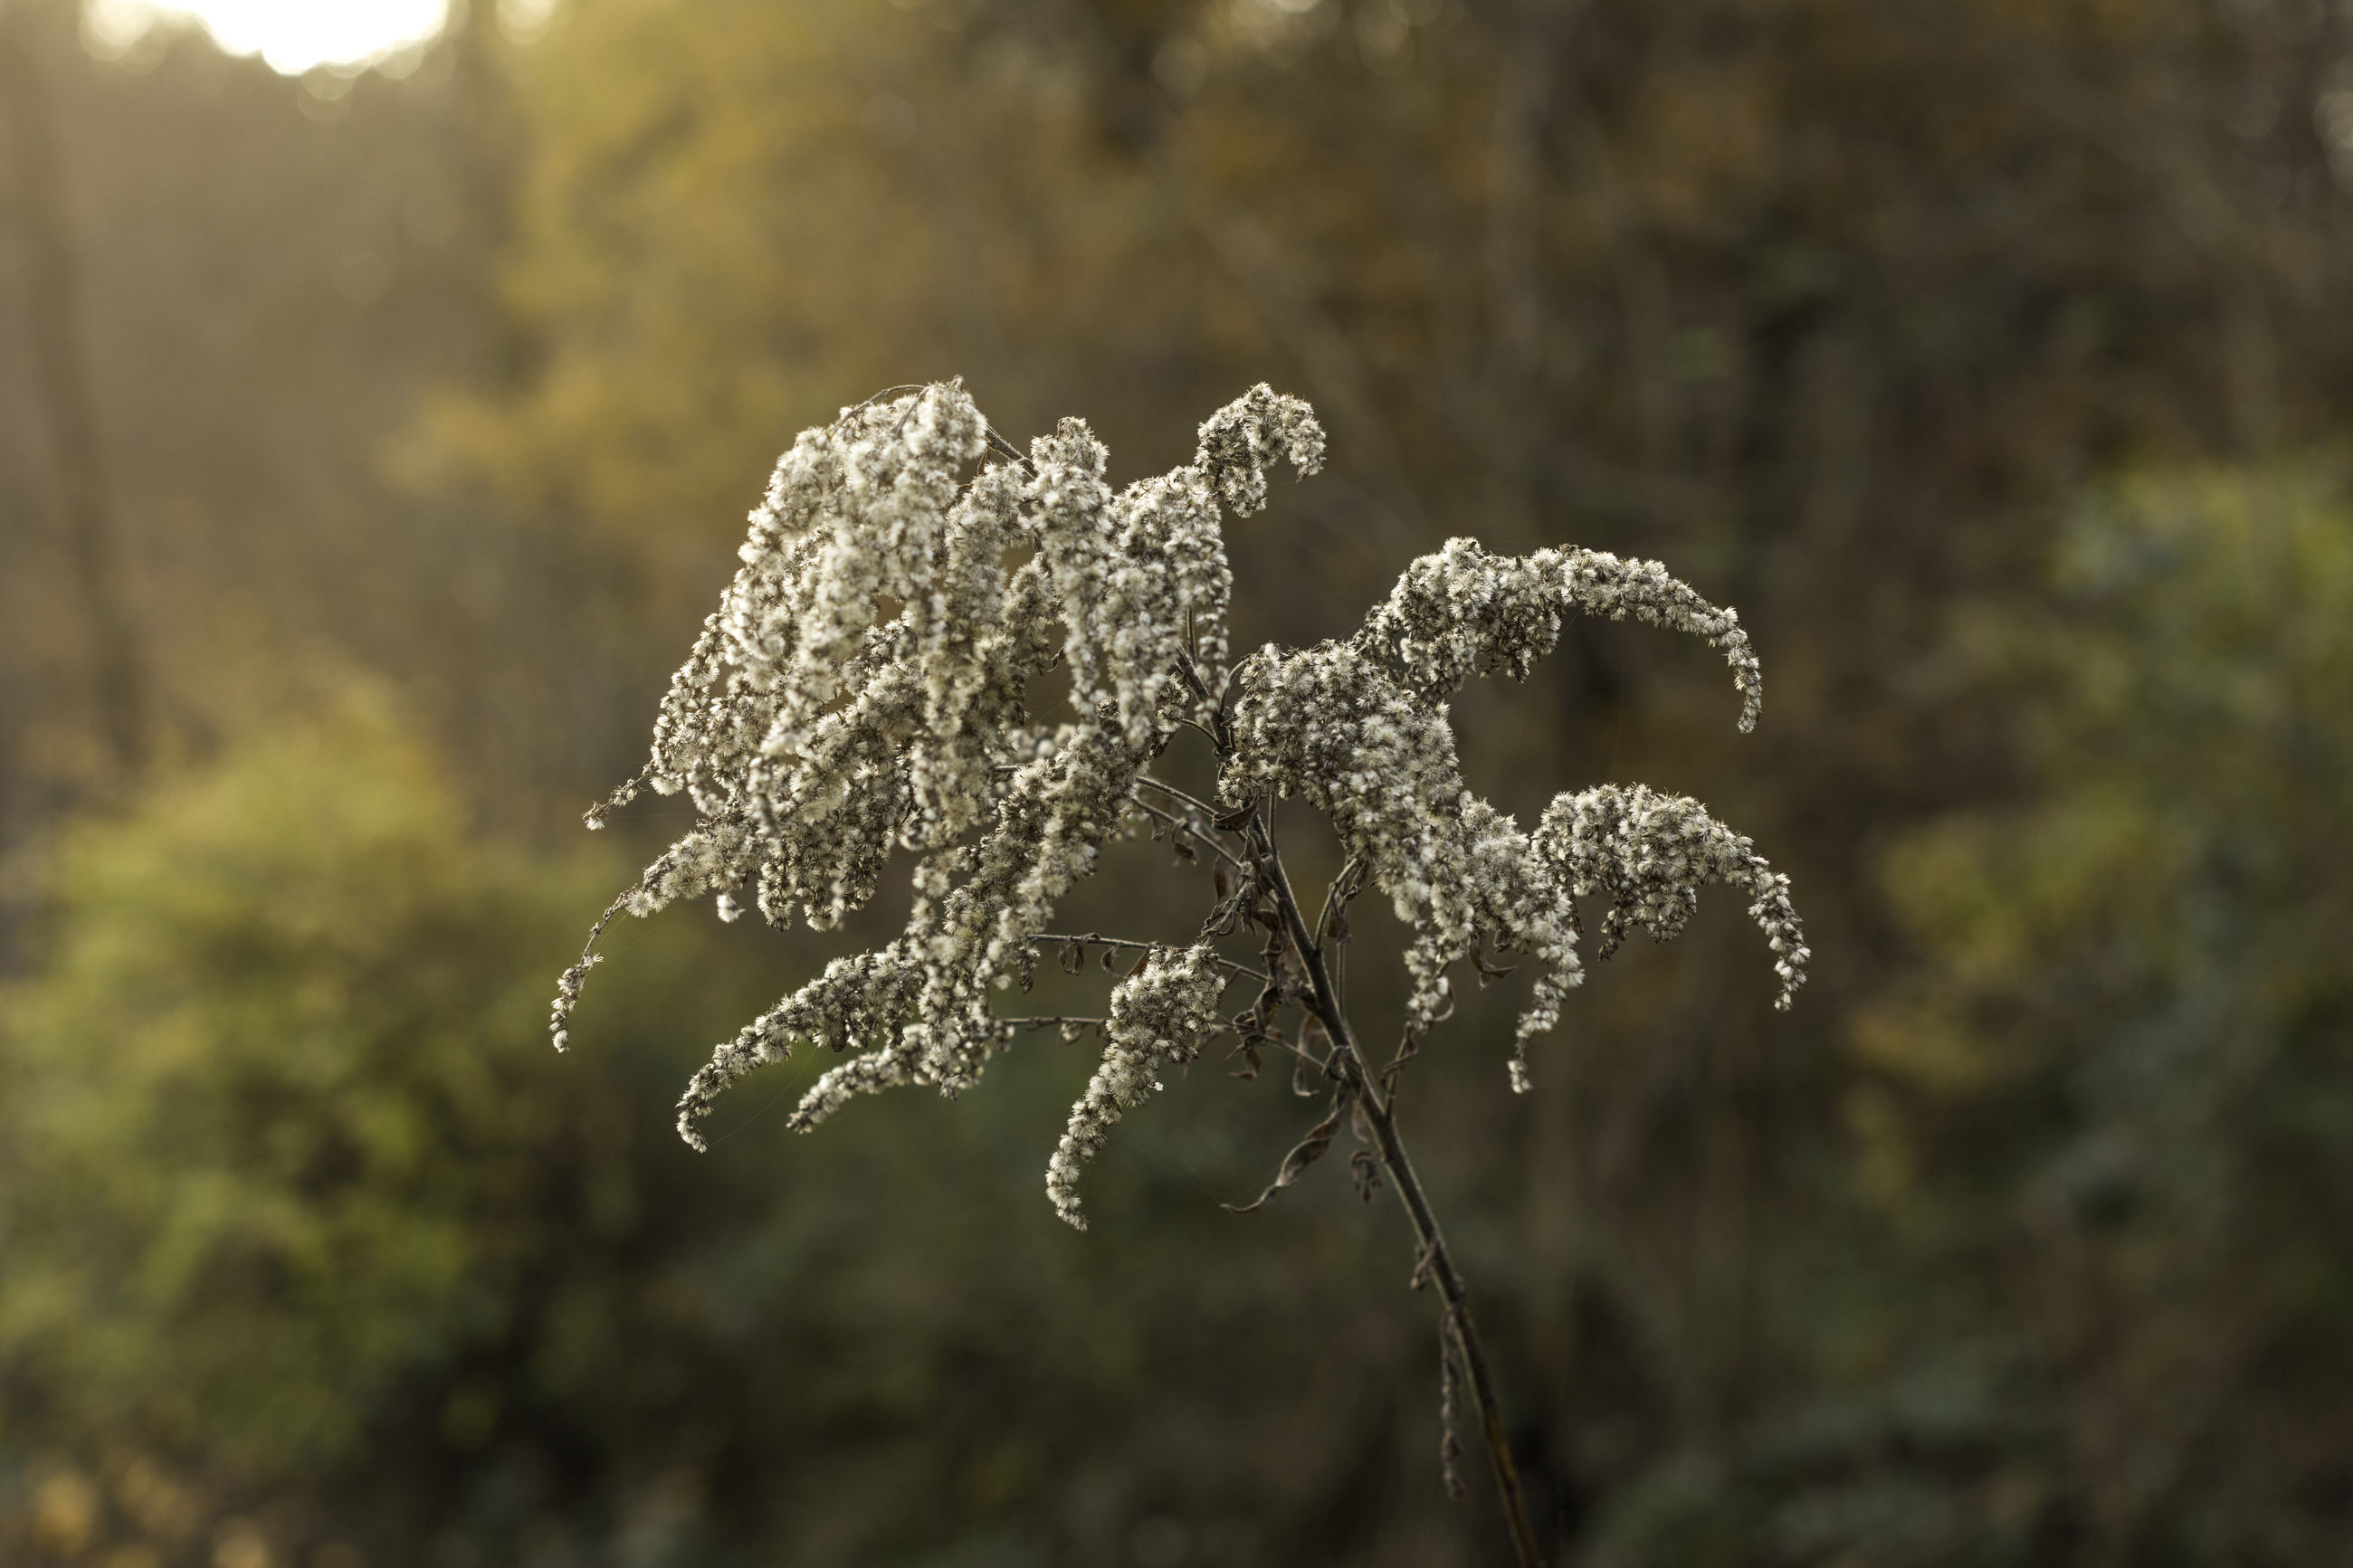 nature, growth, beauty in nature, close-up, no people, outdoors, plant, cold temperature, day, fragility, freshness